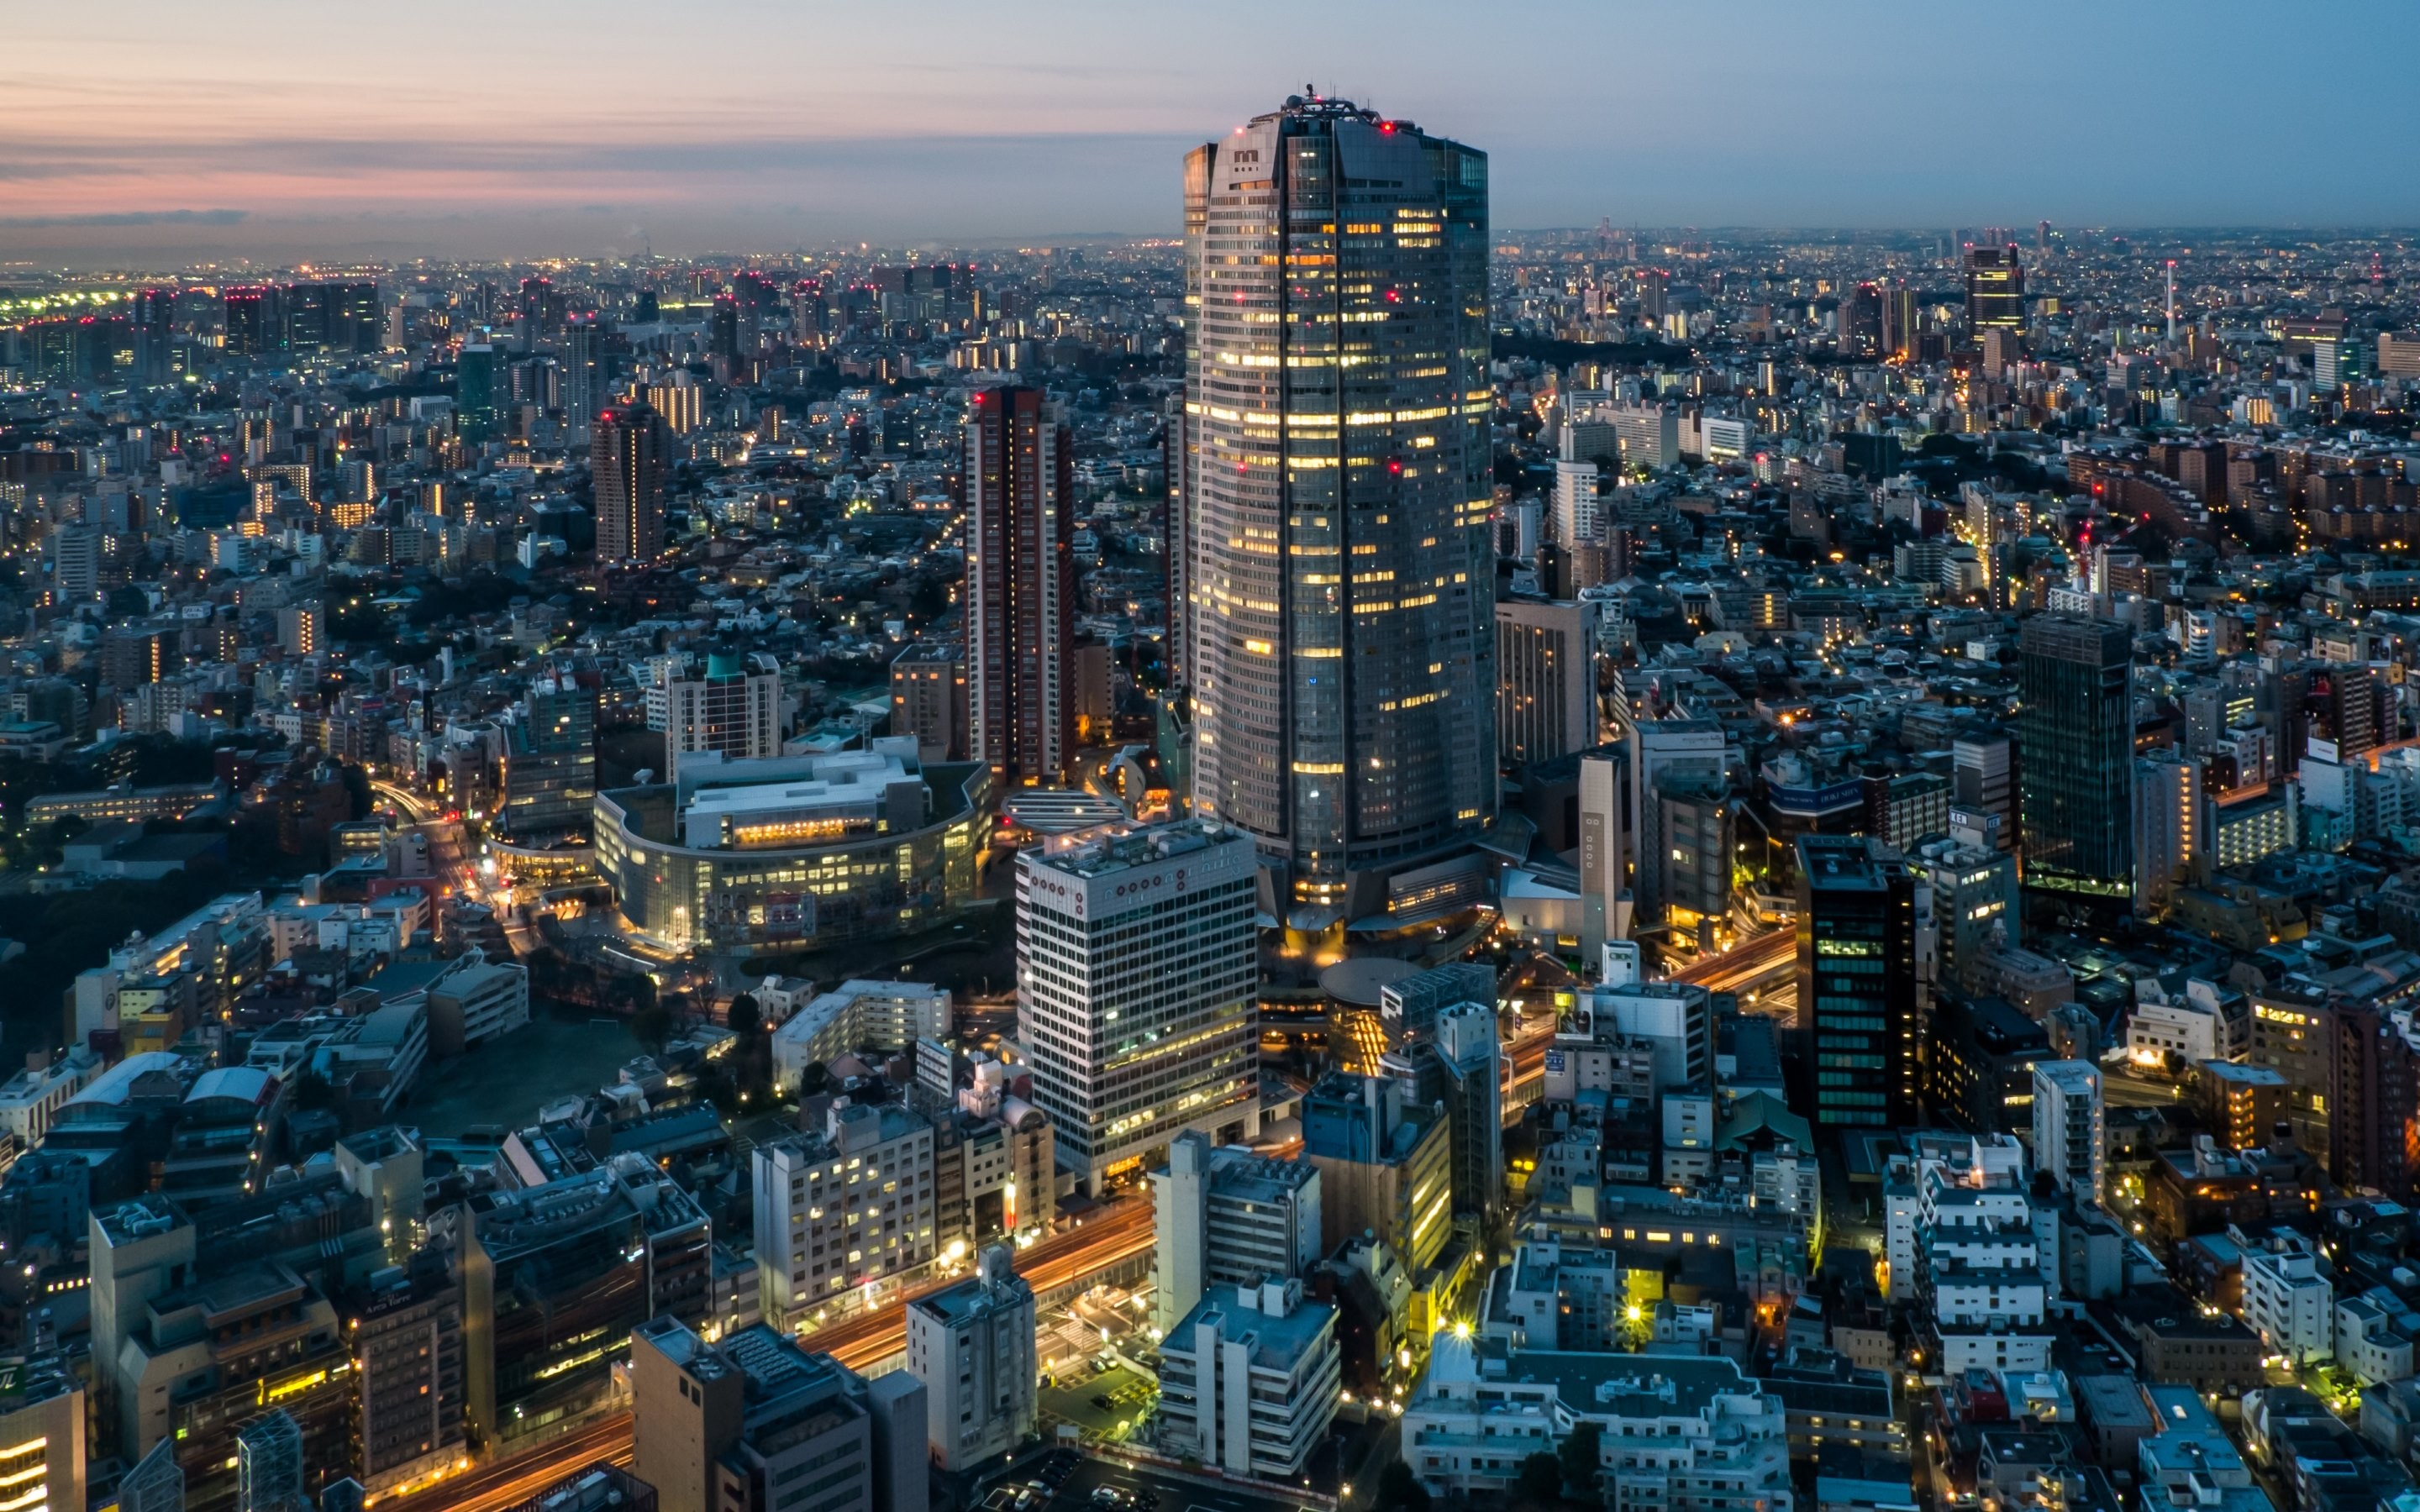 Tokyo City Night HD Wallpapers   New HD Wallpapers 2880x1800